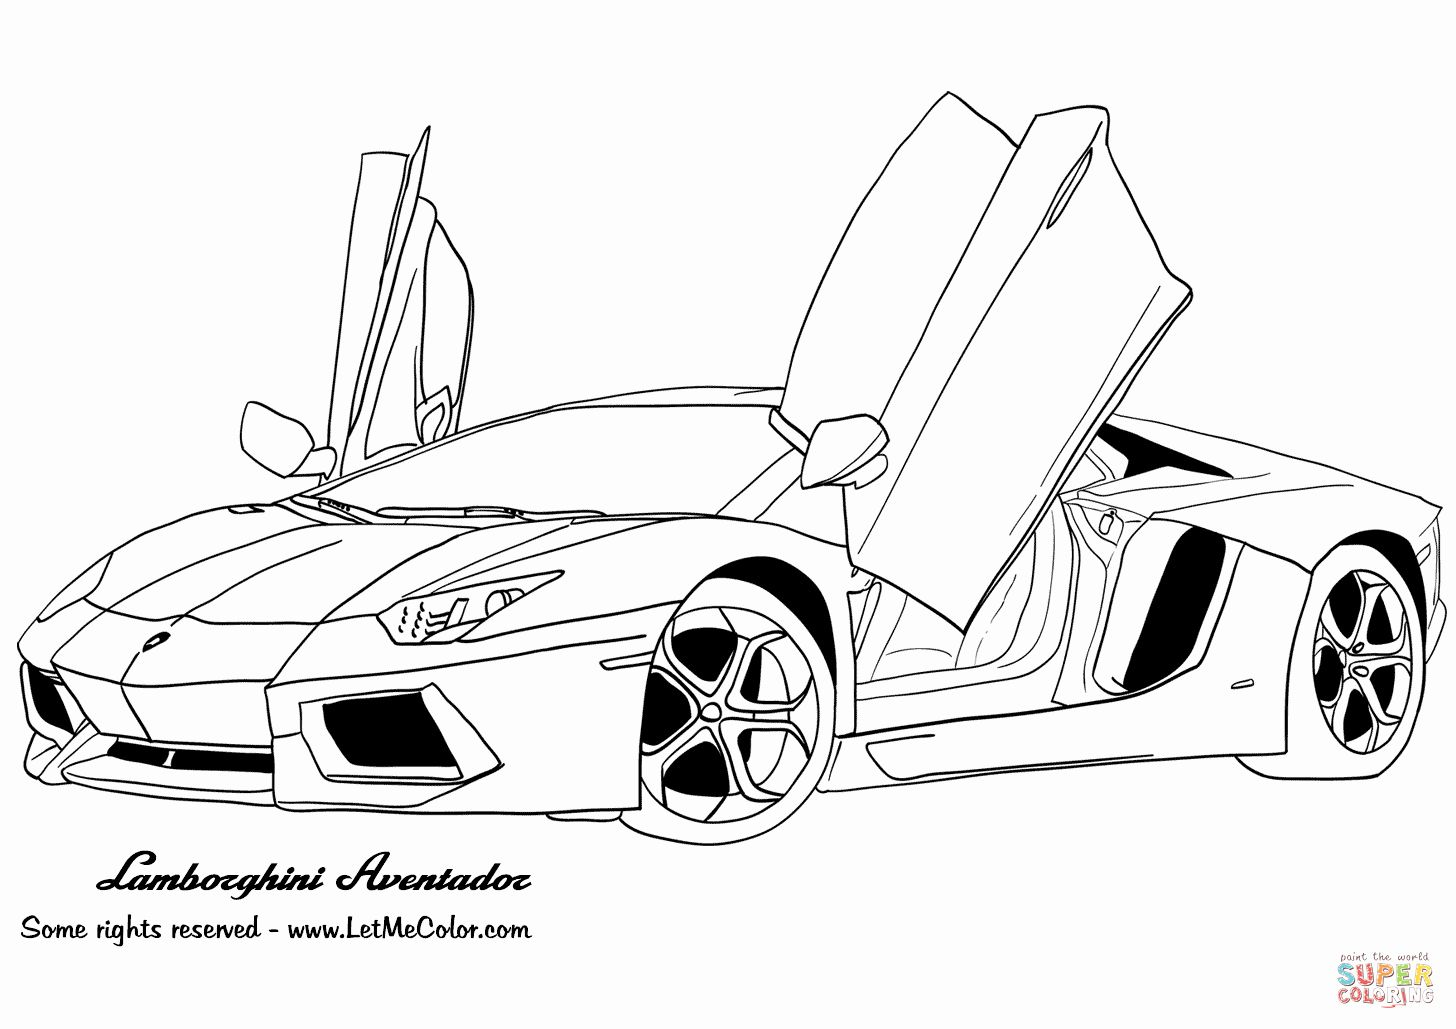 sports coloring book pdf luxury race car coloring sheets lovely coloring pages cars fresh renn in 2020 cars coloring pages truck coloring pages race car coloring pages pinterest